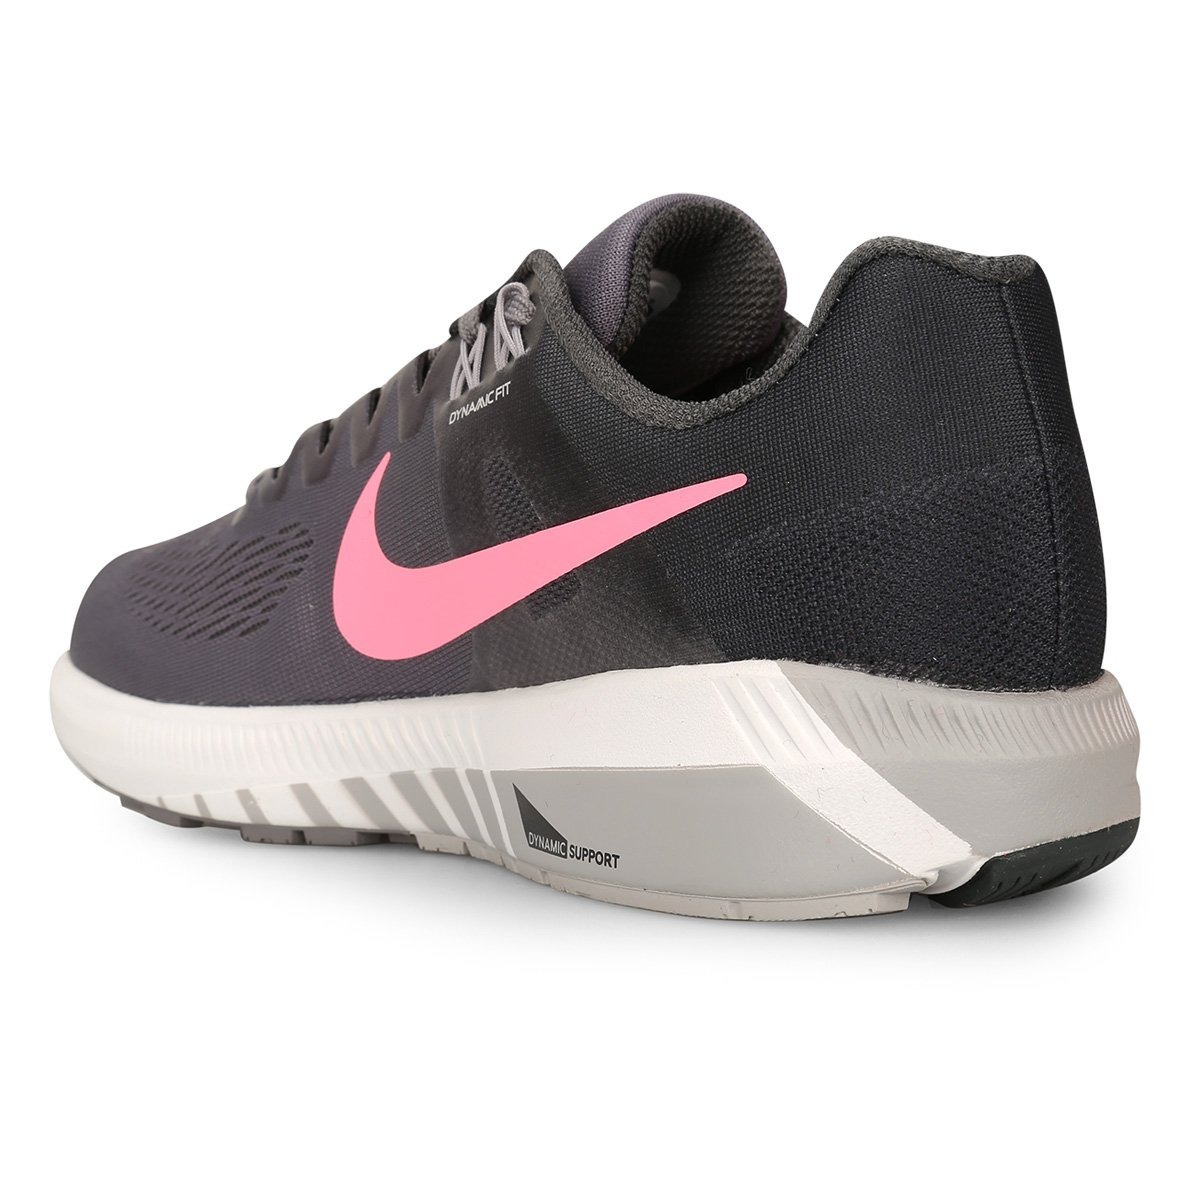 fc7d840c388 zapatillas mujer nike air zoom structure 21 running hot sale. Cargando zoom.